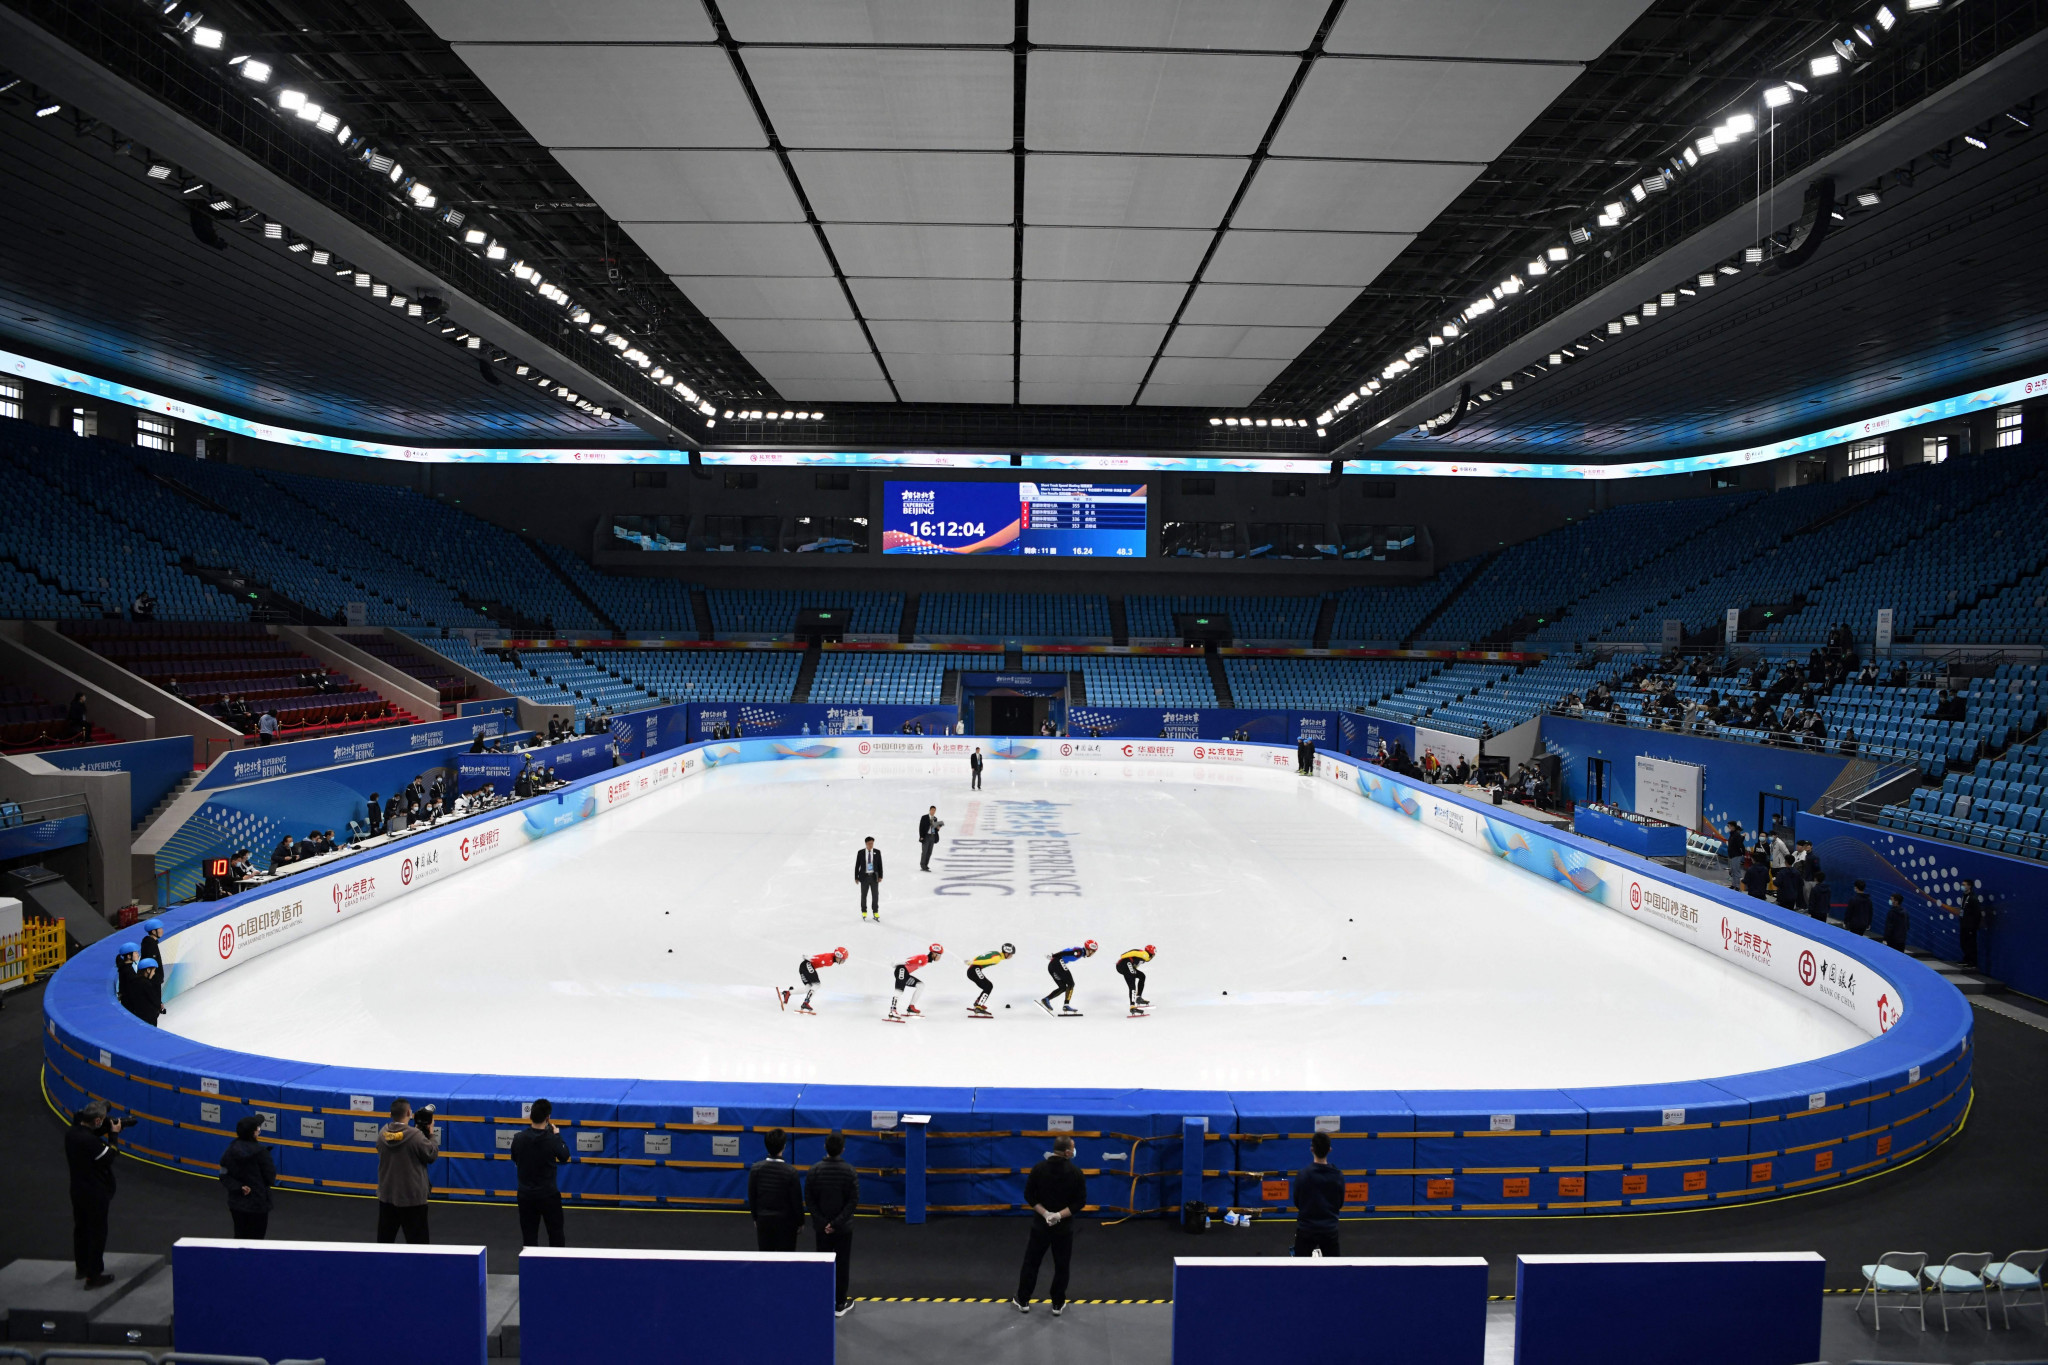 Julian Macaraeg is hoping to become the Philippines' first-ever speed skater to compete at a Winter Olympics in Beijing ©Getty Images